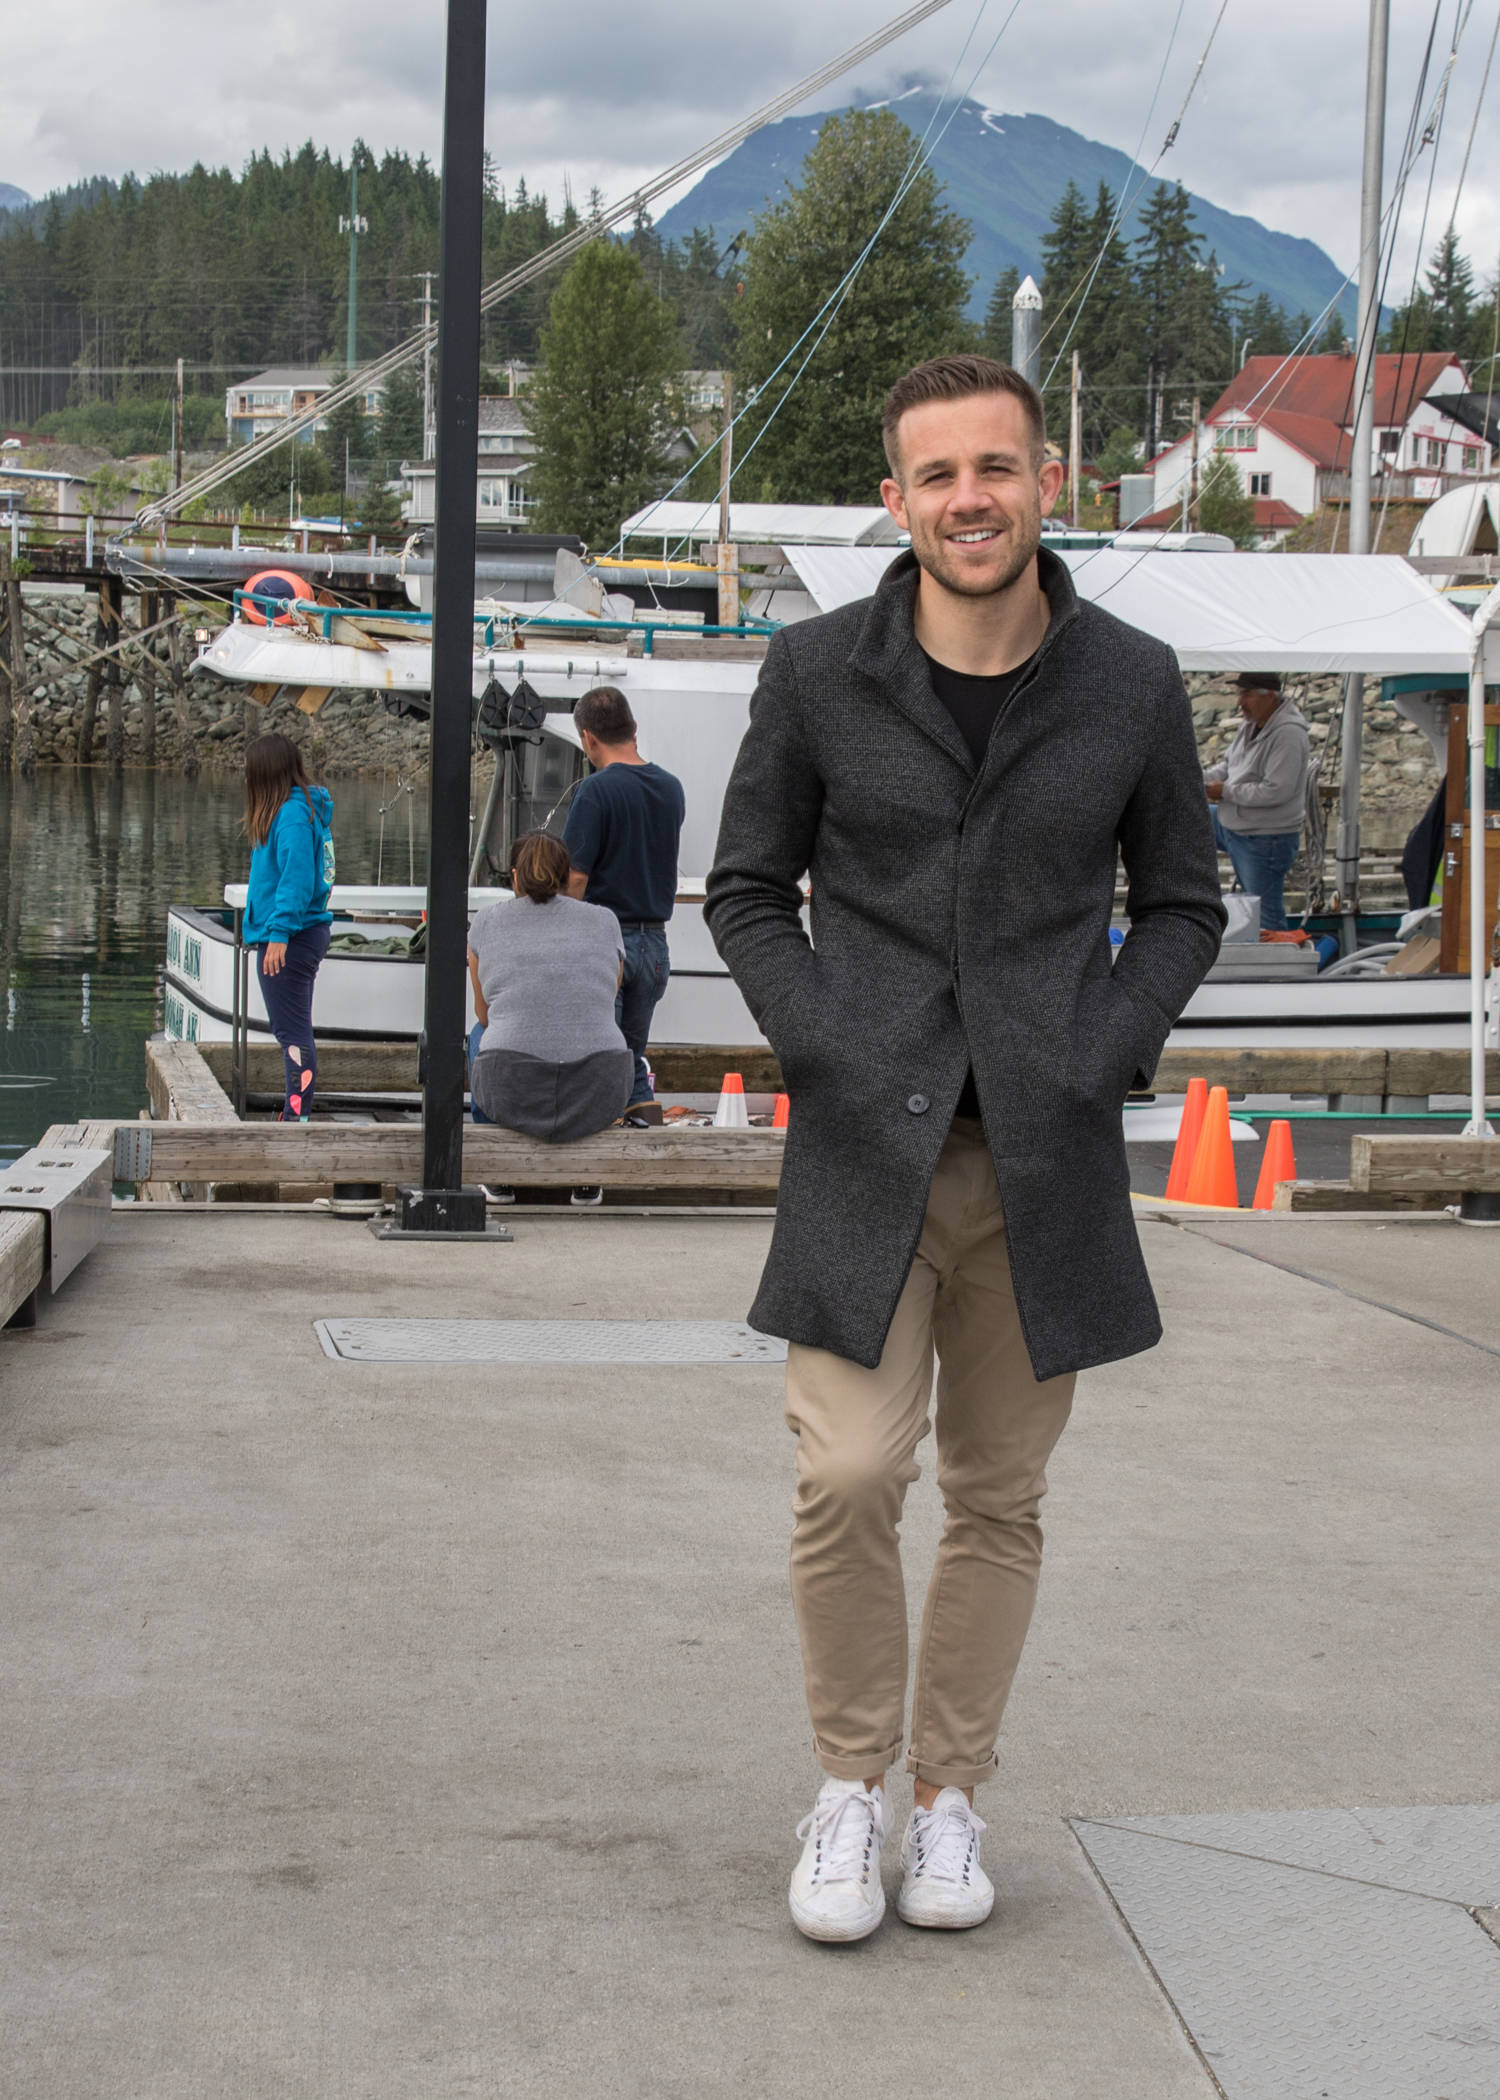 Style doesn't have to be complicated. Matt Weighman, a visitor from the UK, keeps it simple by wearing a woven grey Zara Man jacket over a black T-shirt and slim-fit khaki jeans with rolled up cuffs.